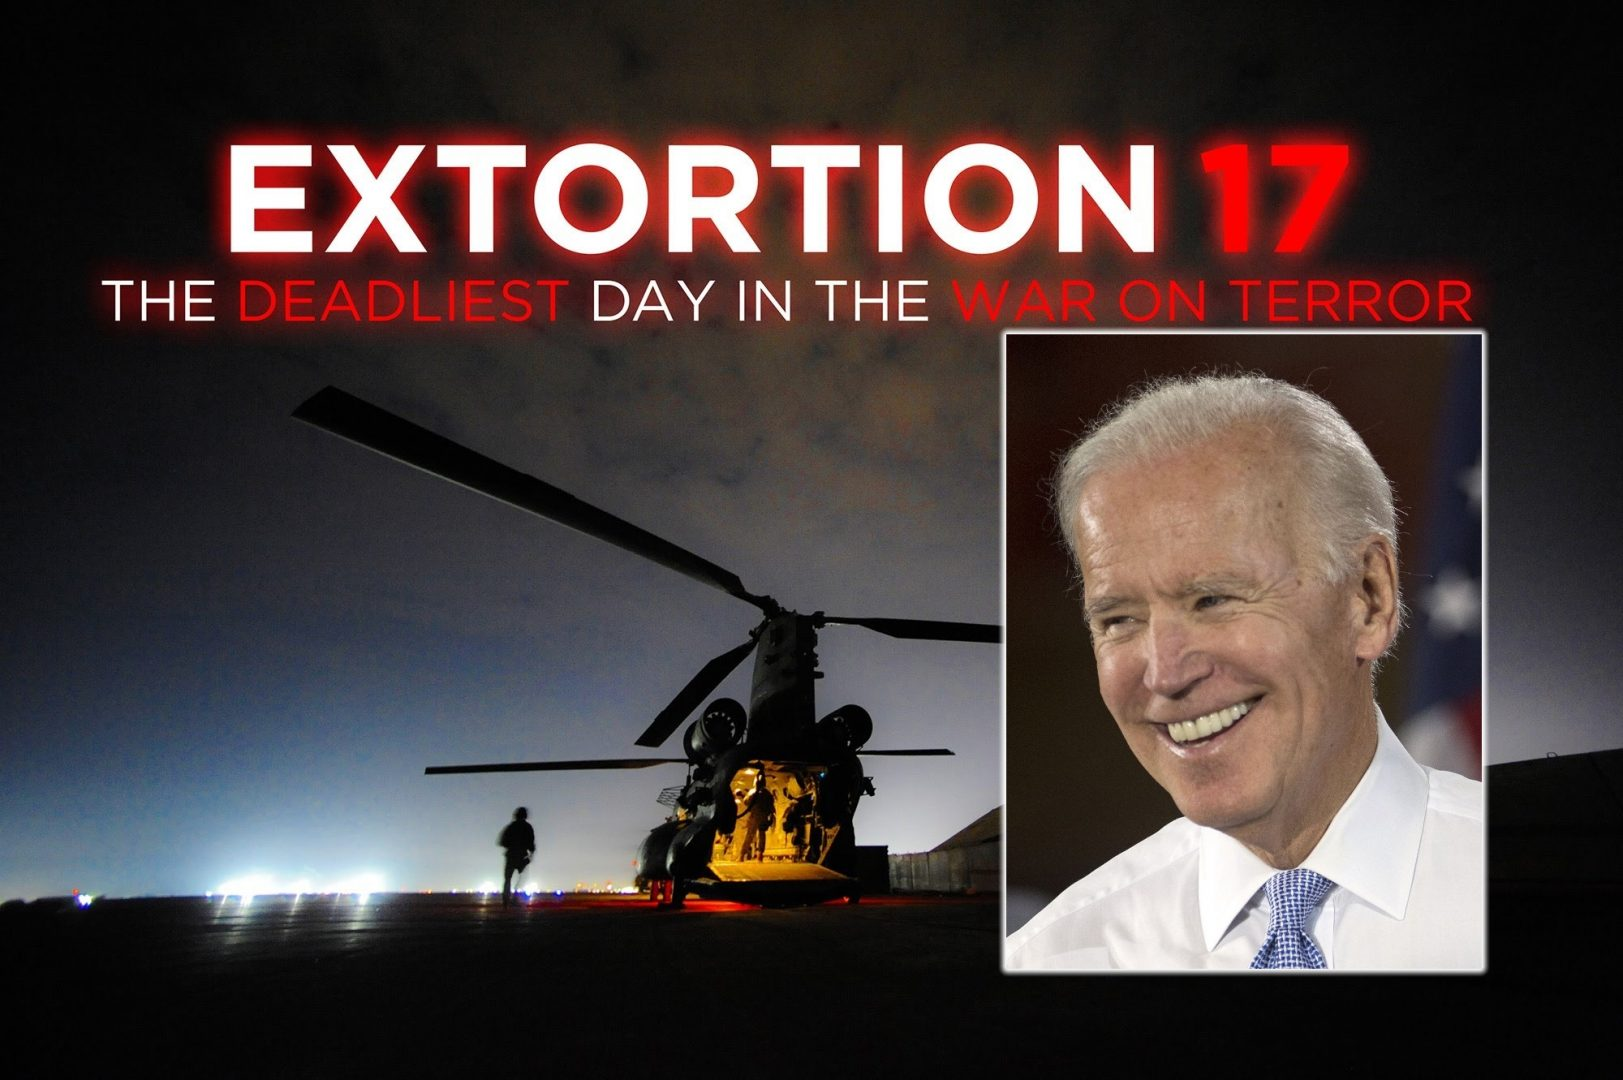 Joe Biden Still Has Not Been Brought To Justice Concerning His Involvement In The Deaths Of More Than 2 Dozen American SEALs & Military